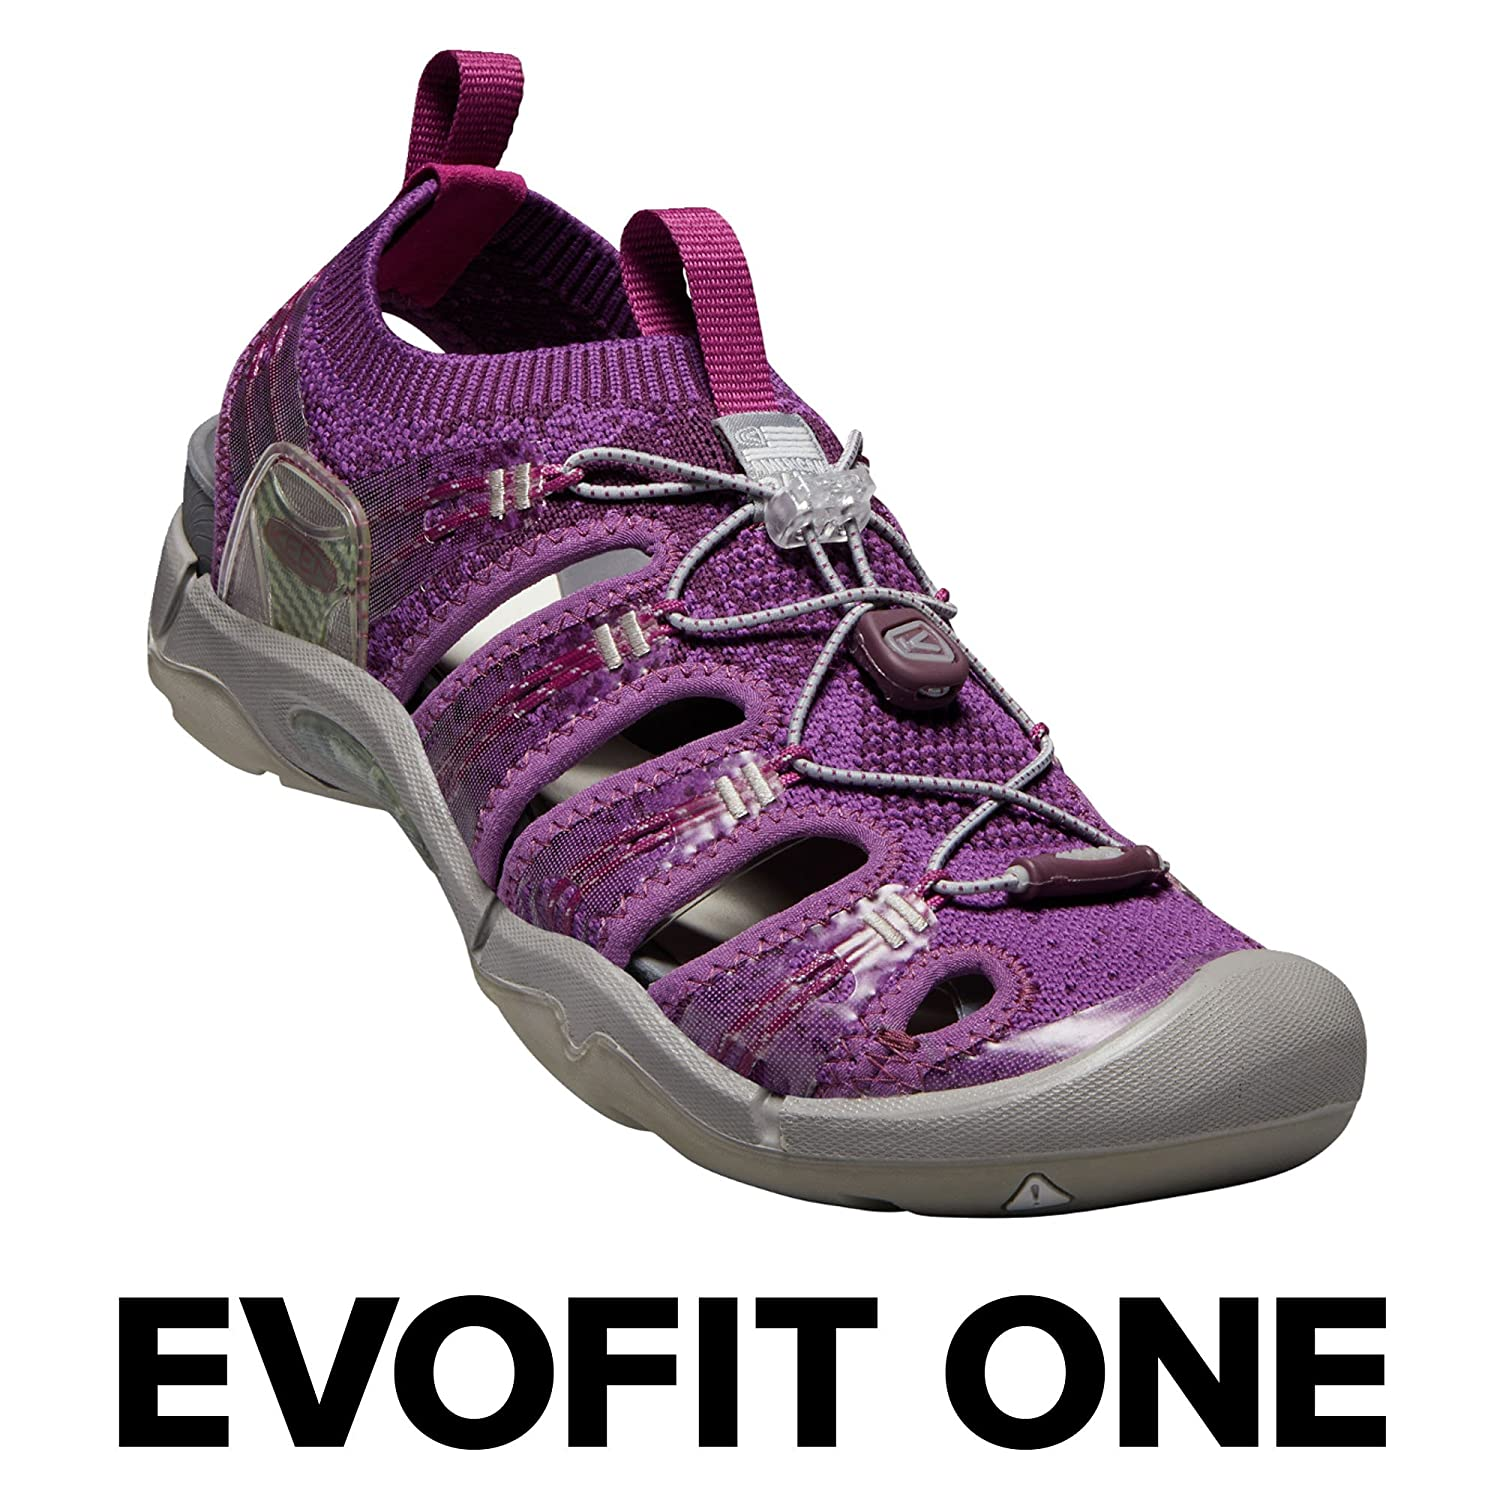 KEEN Women's EVOFIT ONE Water Sandal for Outdoor Adventures B071XWPPKH 10.5 M US|Grape Kiss/Grape Wine